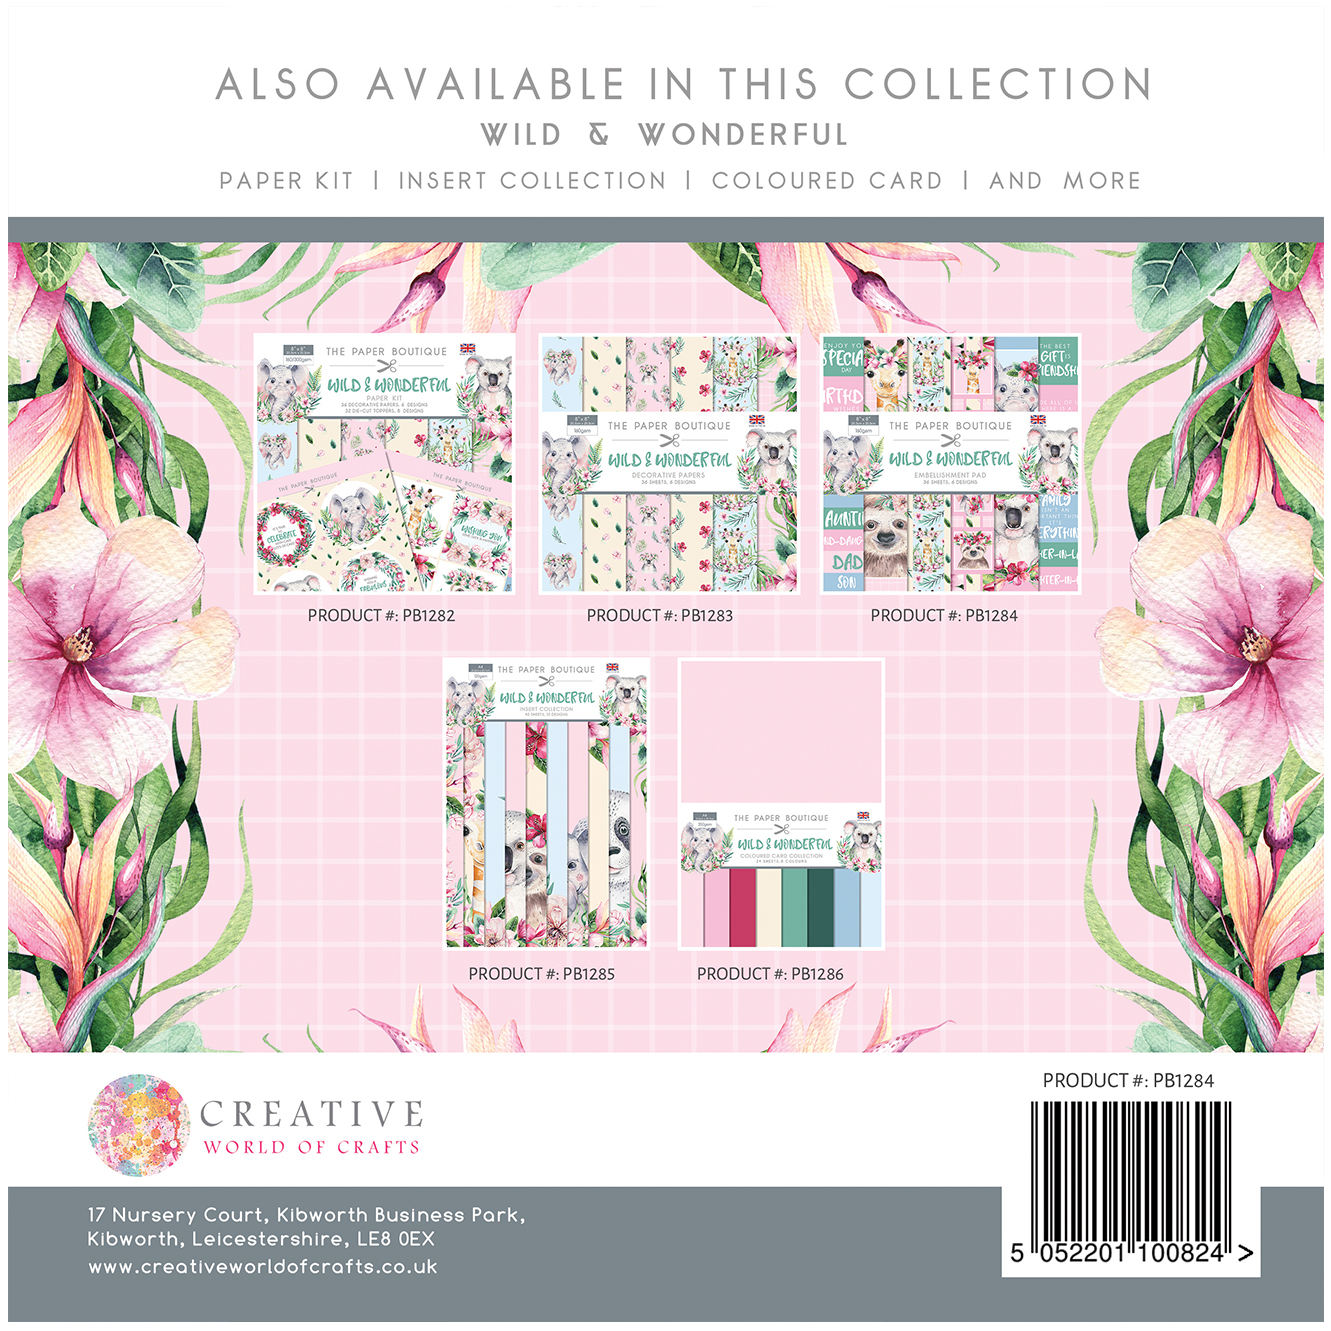 The Paper Boutique Wild & Wonderful 8″ x 8″ Embellishment Pad